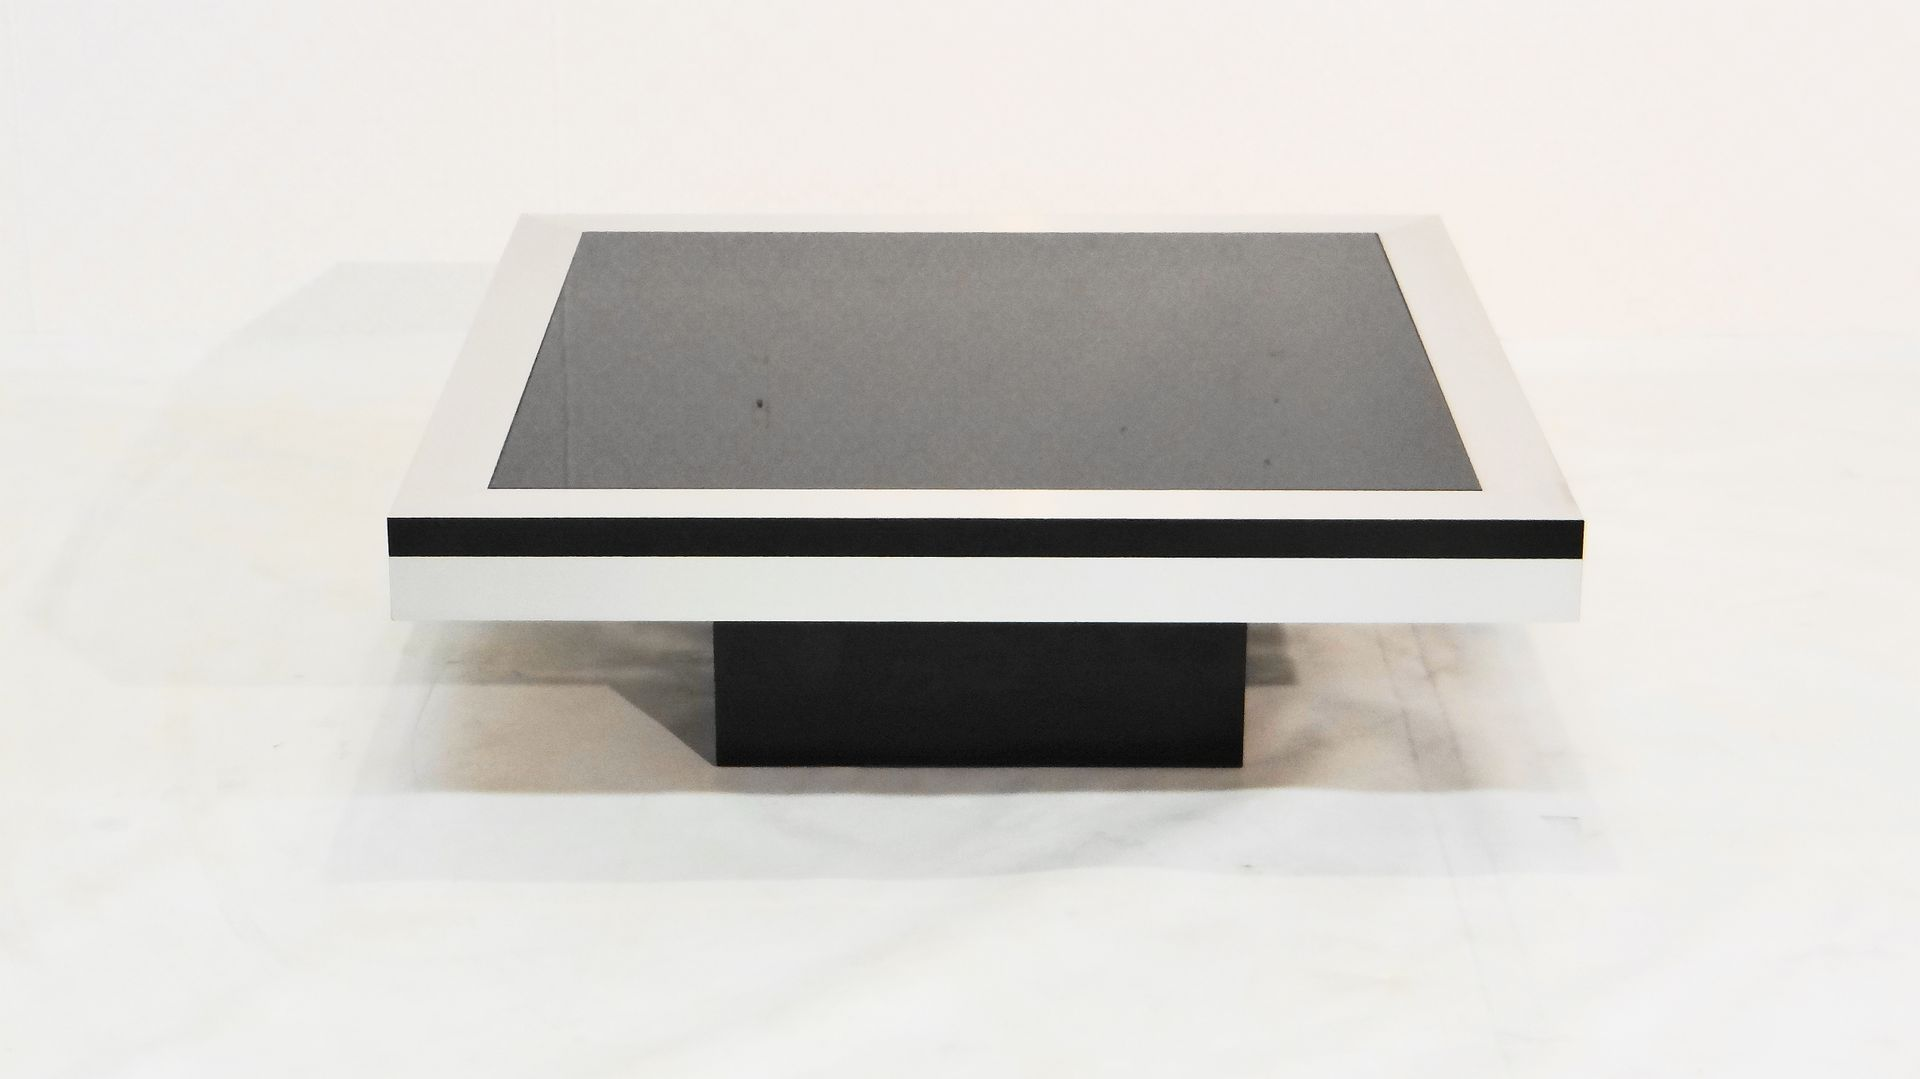 French Stainless Steel and Glass Coffee Table for sale at